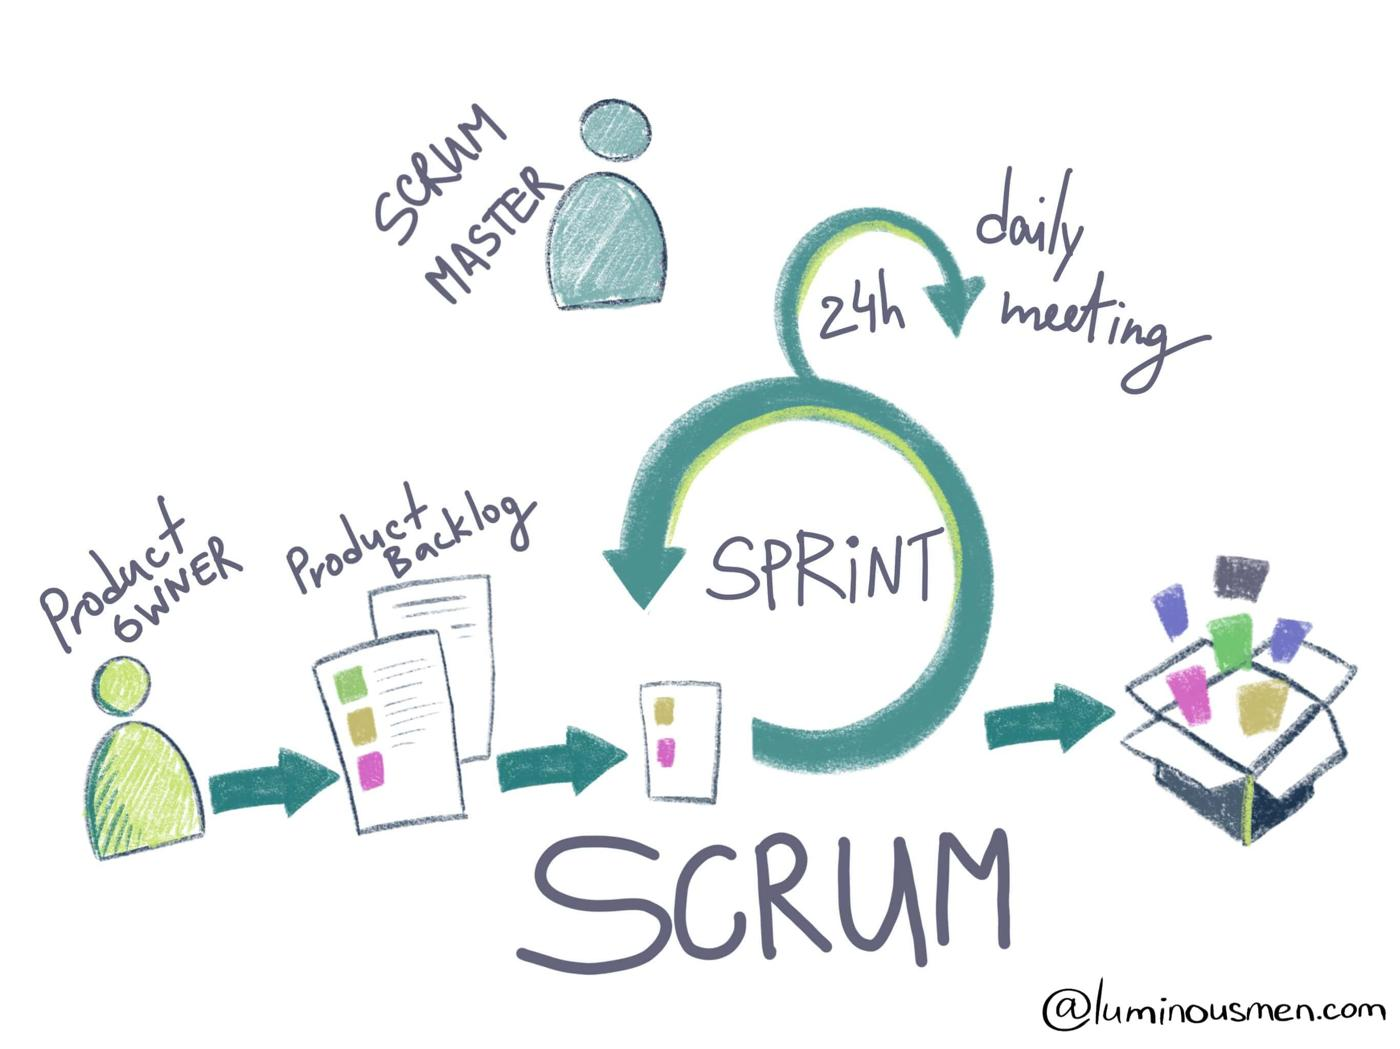 WTF is SCRUM